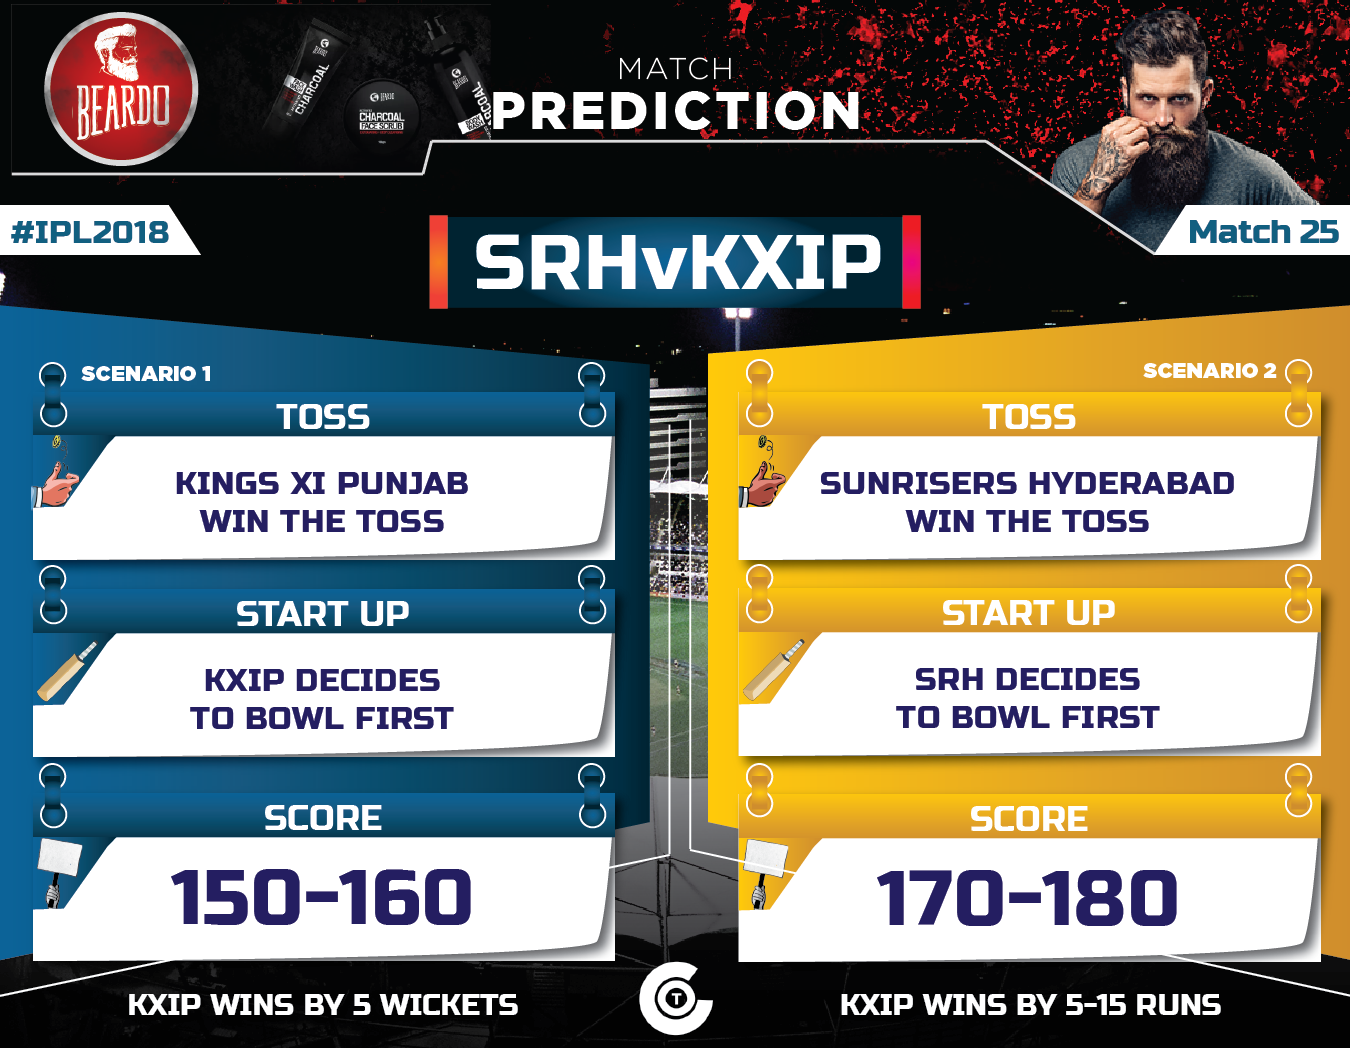 Srh vs kxip 2018 match prediction